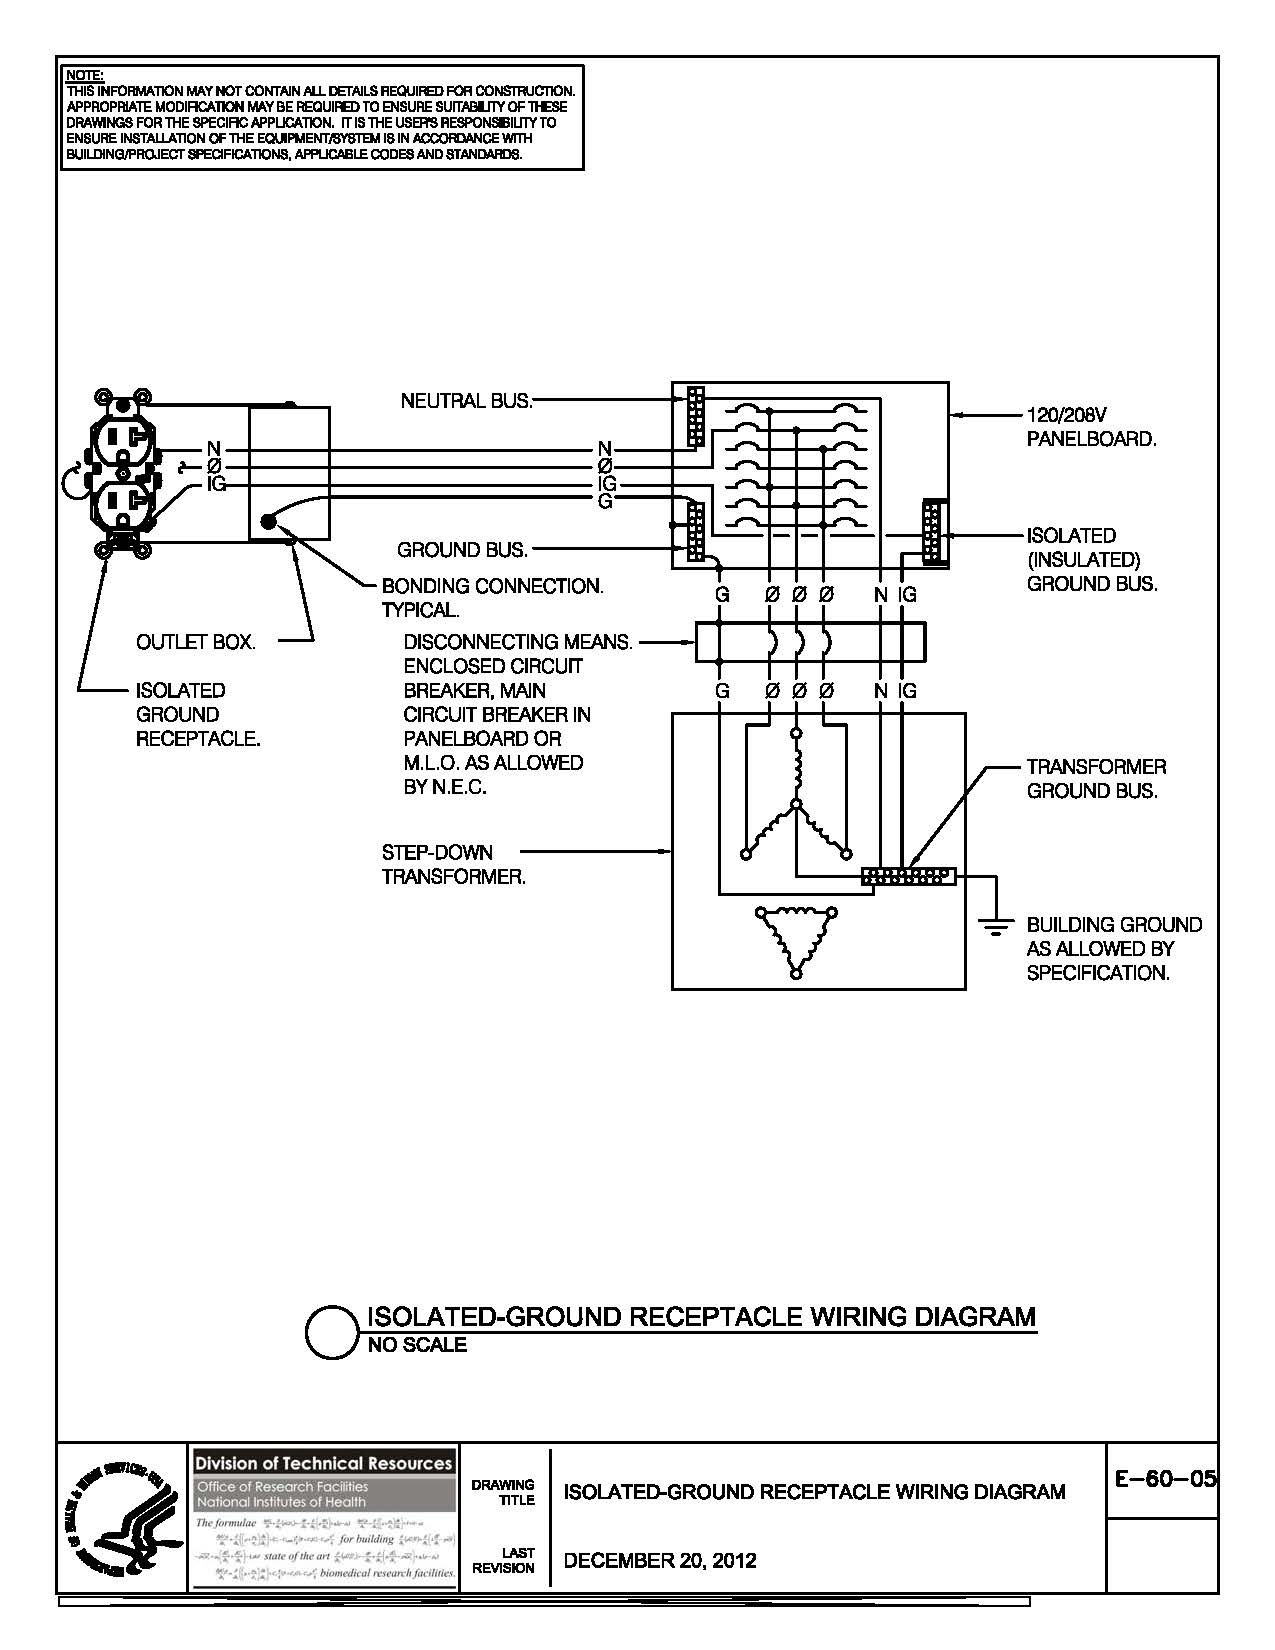 intoxalock wiring diagram gallery to install a photocell wiring diagram photocell wiring diagram cad detail #15